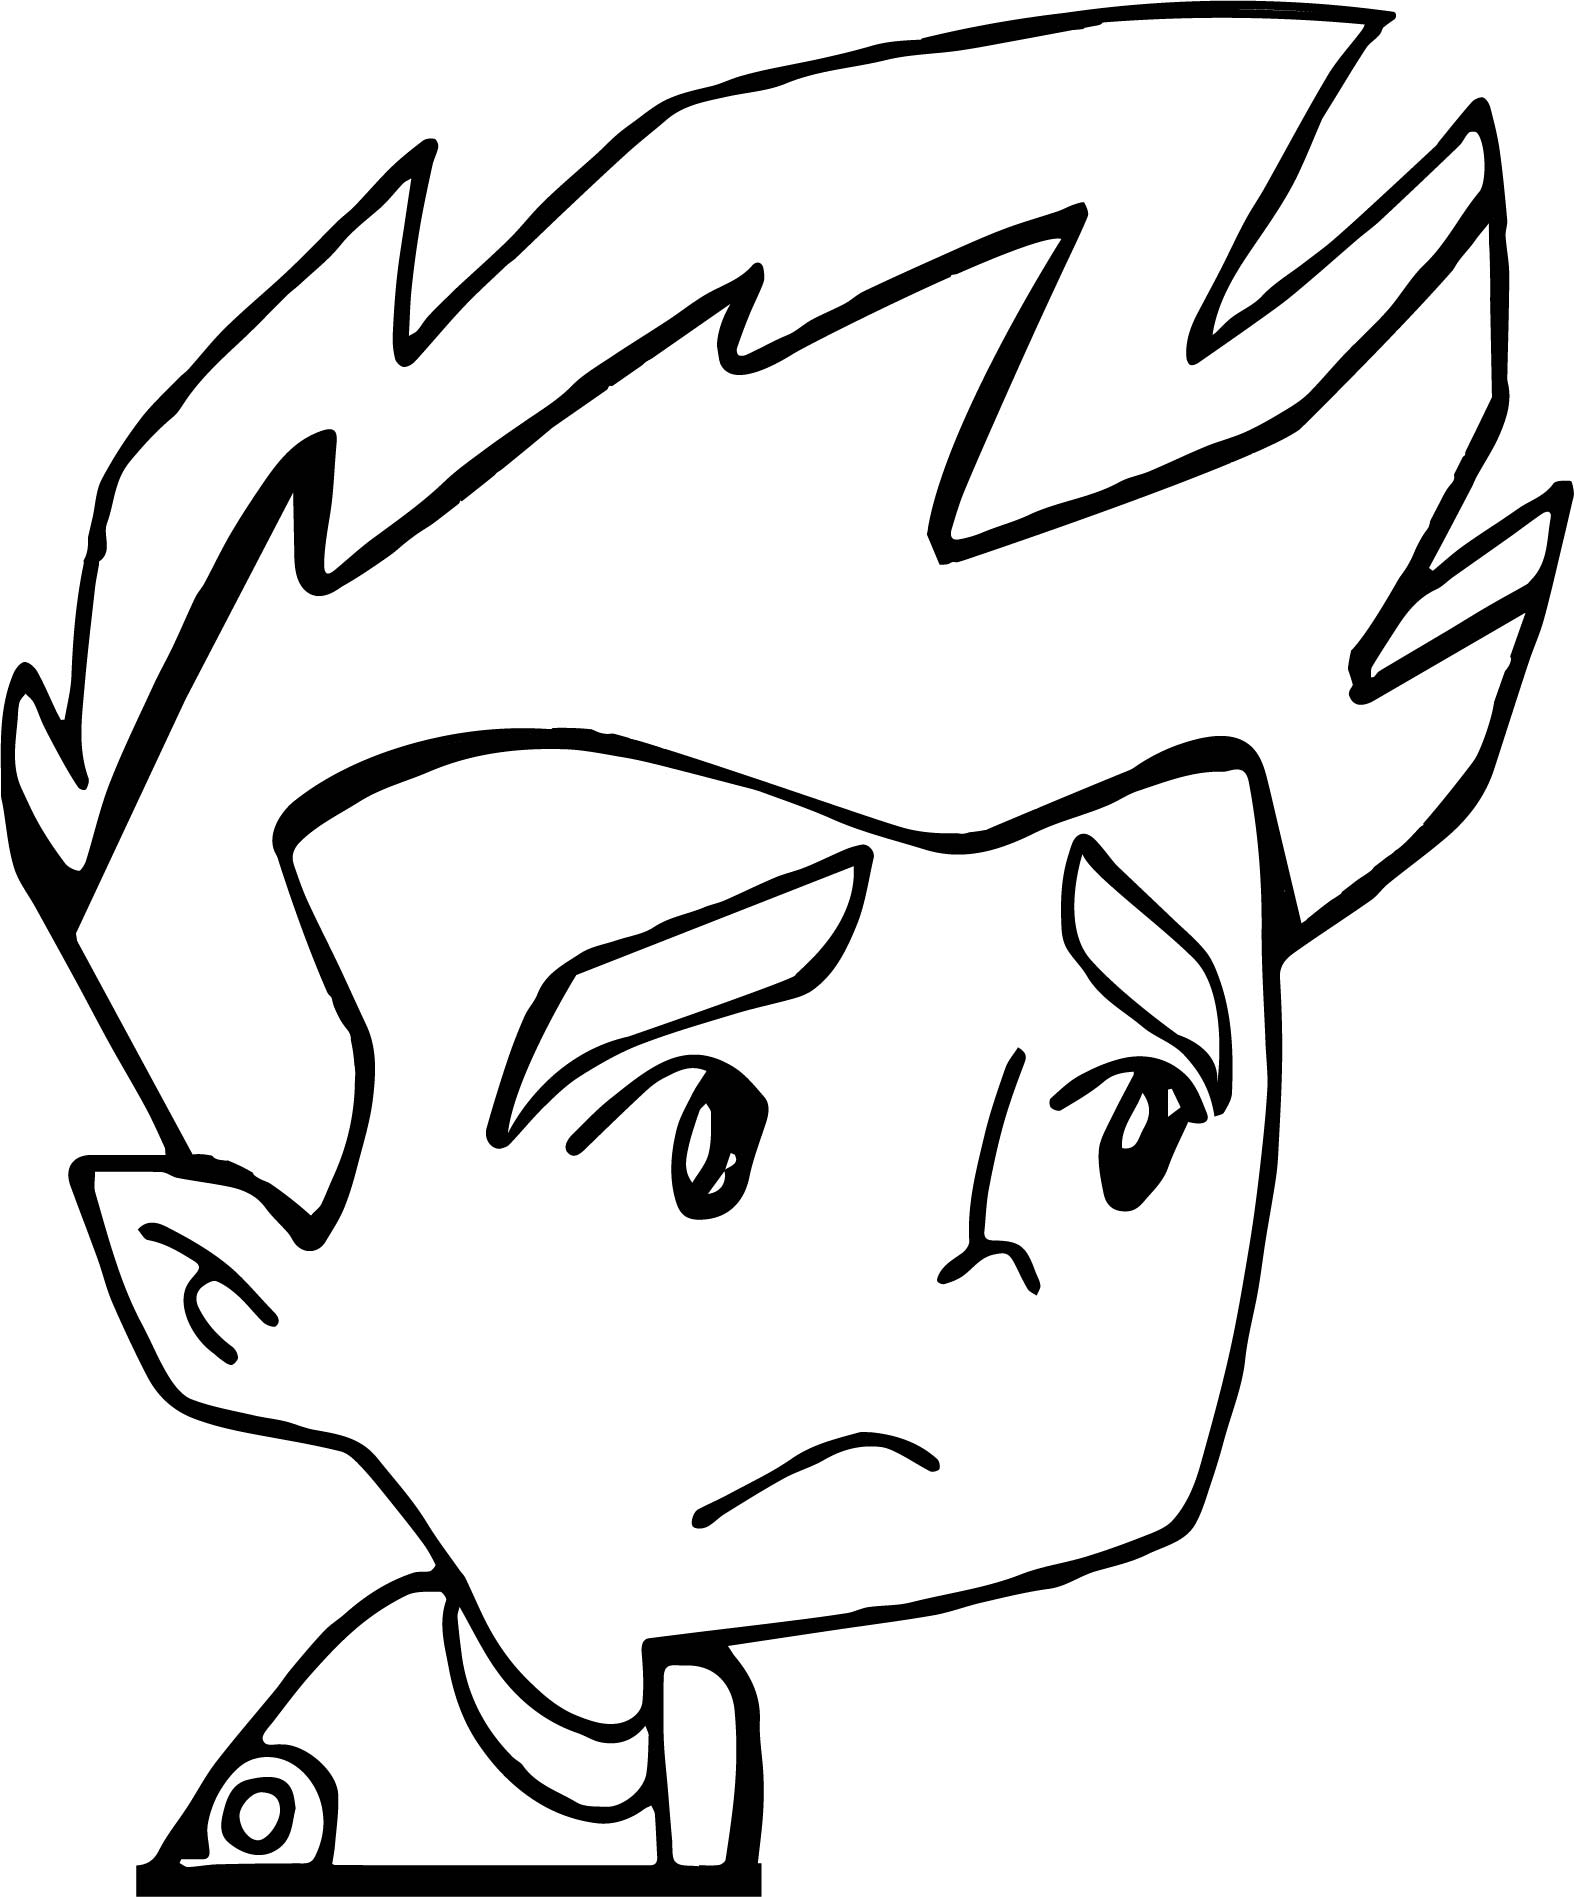 american dragon jake long coloring pages - some of jake american dragon jake long coloring page